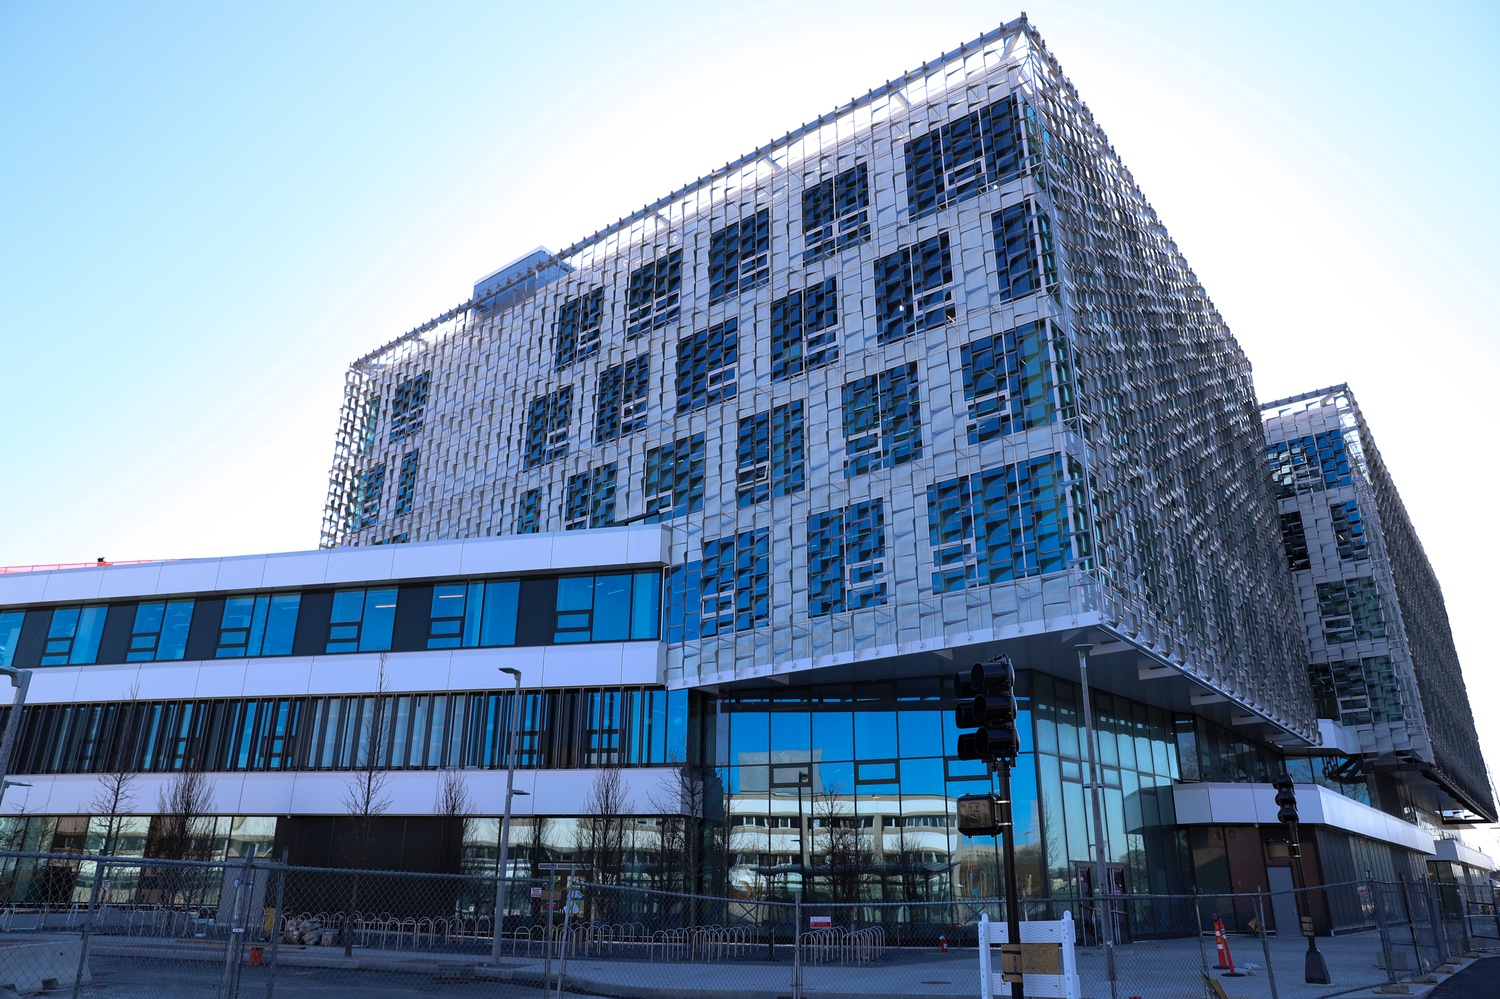 Faculty and staff at the School of Engineering and Applied Sciences have begun moving into their offices at the new Science and Engineering Complex, located in Allston.